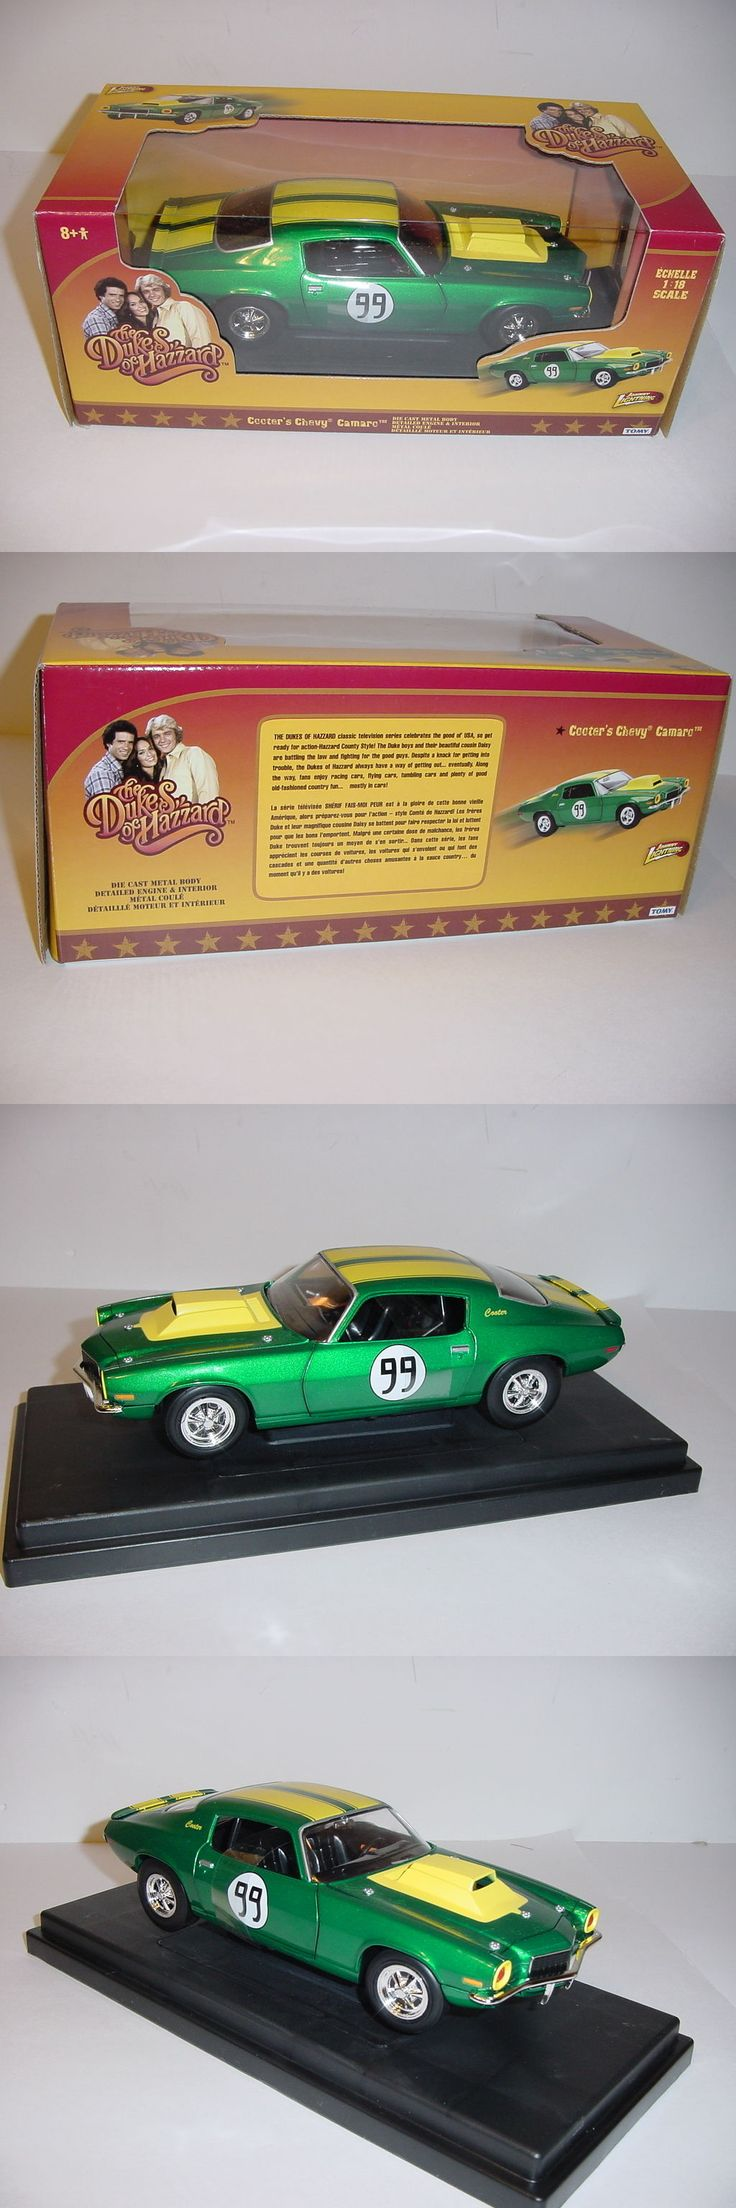 Dukes of Hazzard 20908: 1 18 Dukes Of Hazzard 1970 Chevy Camaro Cooter #99 Nib! High Detail! -> BUY IT NOW ONLY: $42 on eBay!